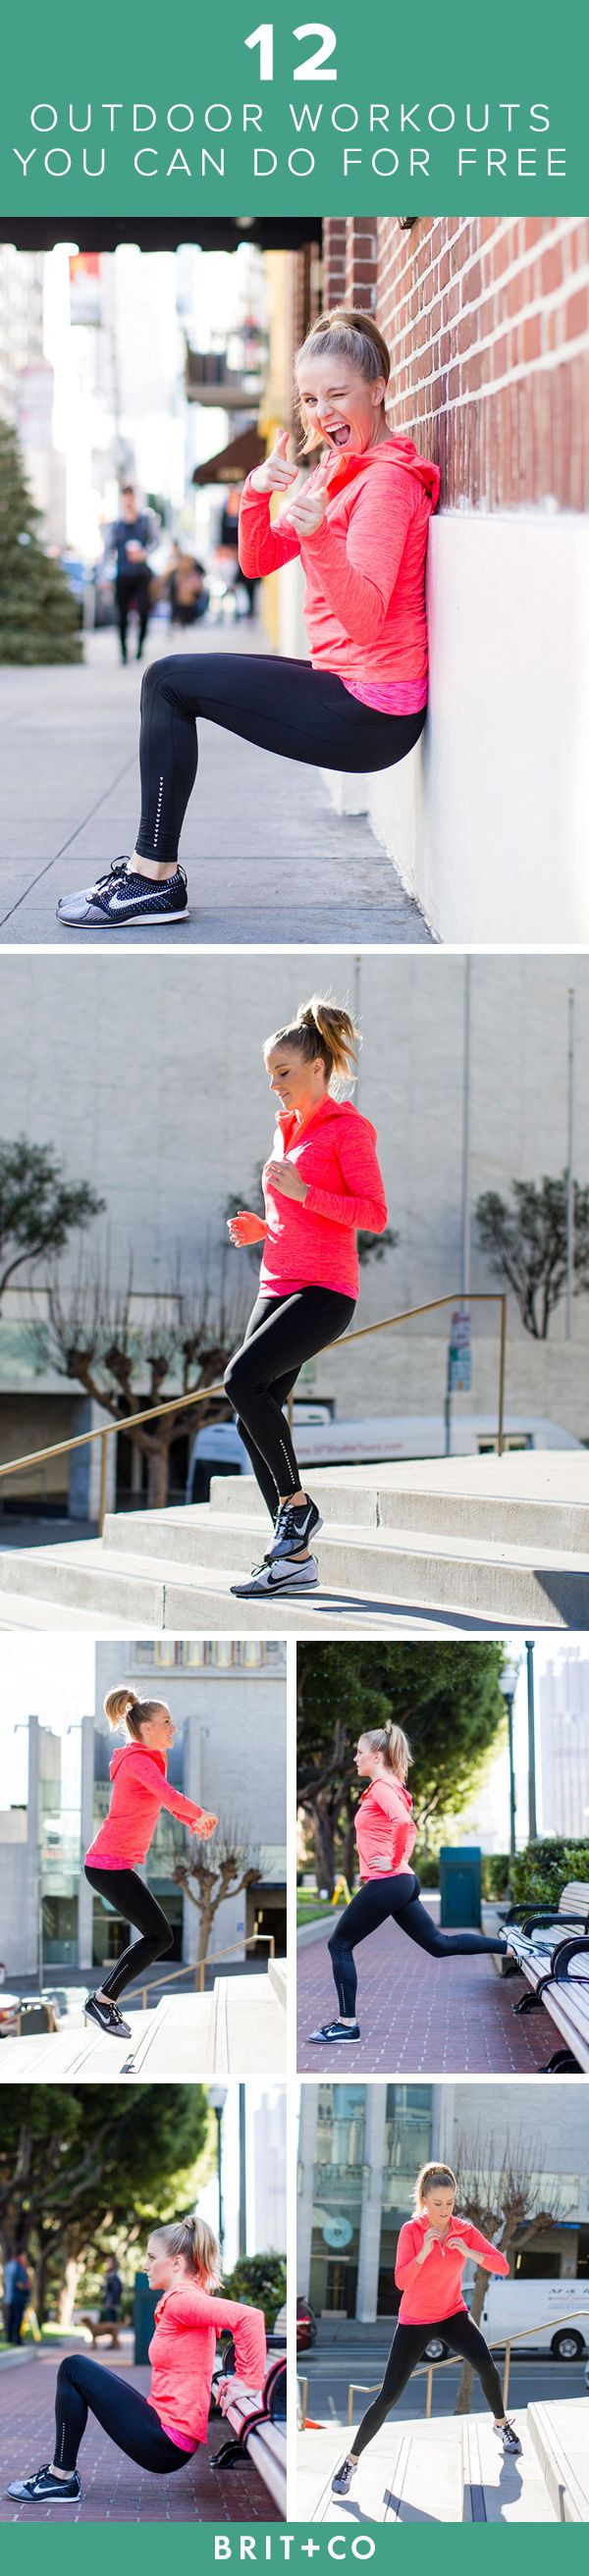 Bookmark this + add 12 *FREE* outdoor exercises to your workout routine.